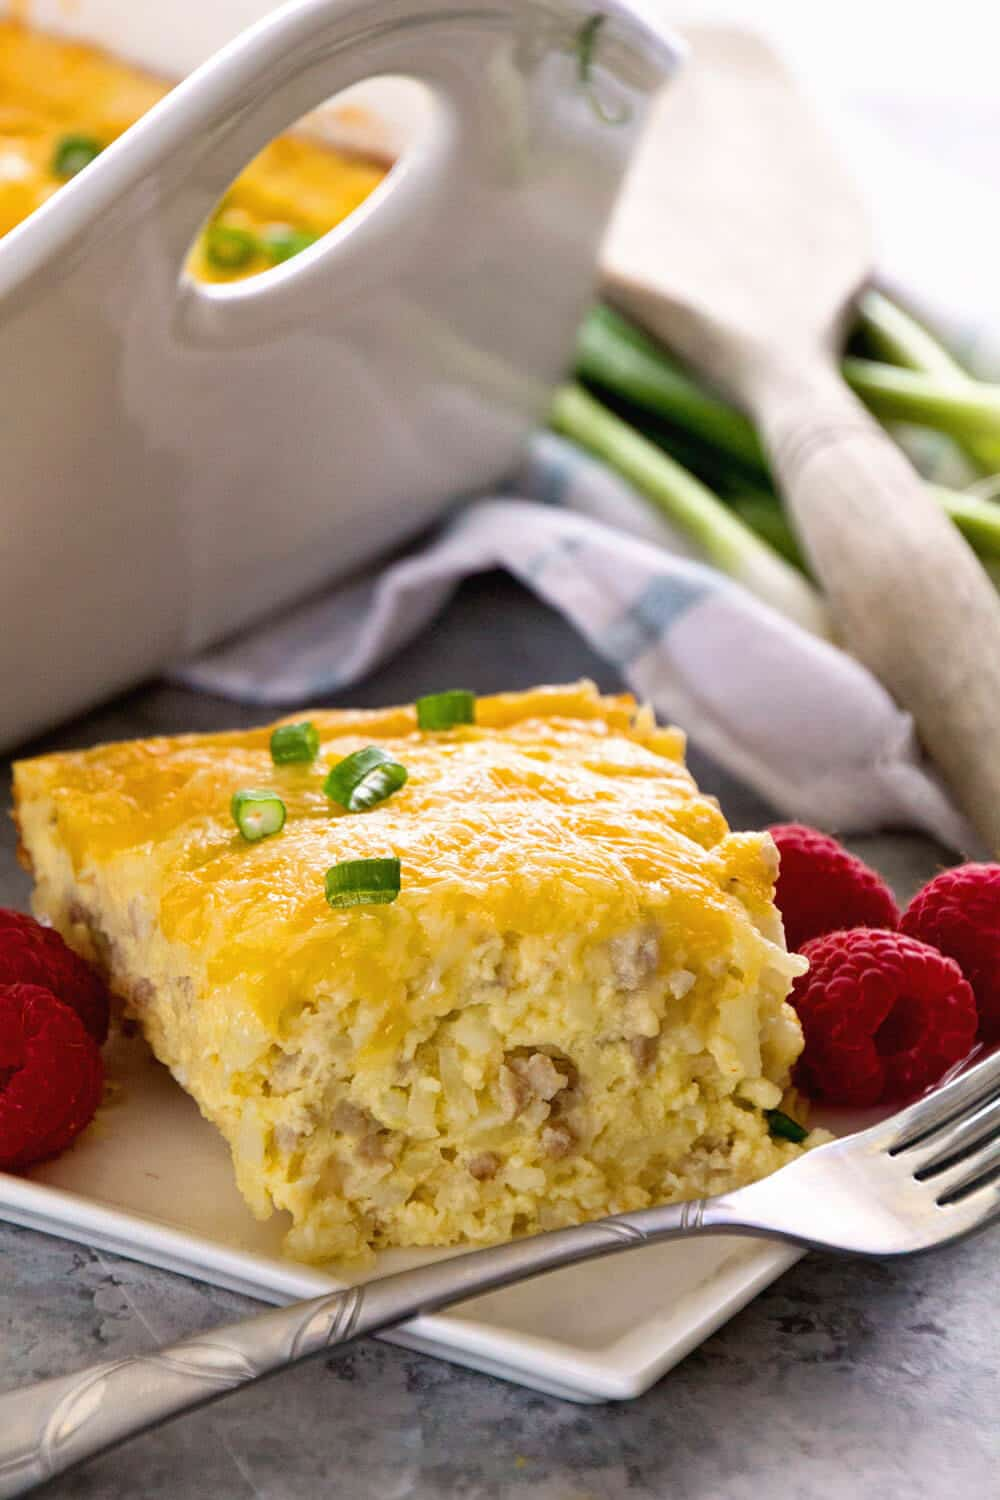 hashbrown breakfast casserole on plate